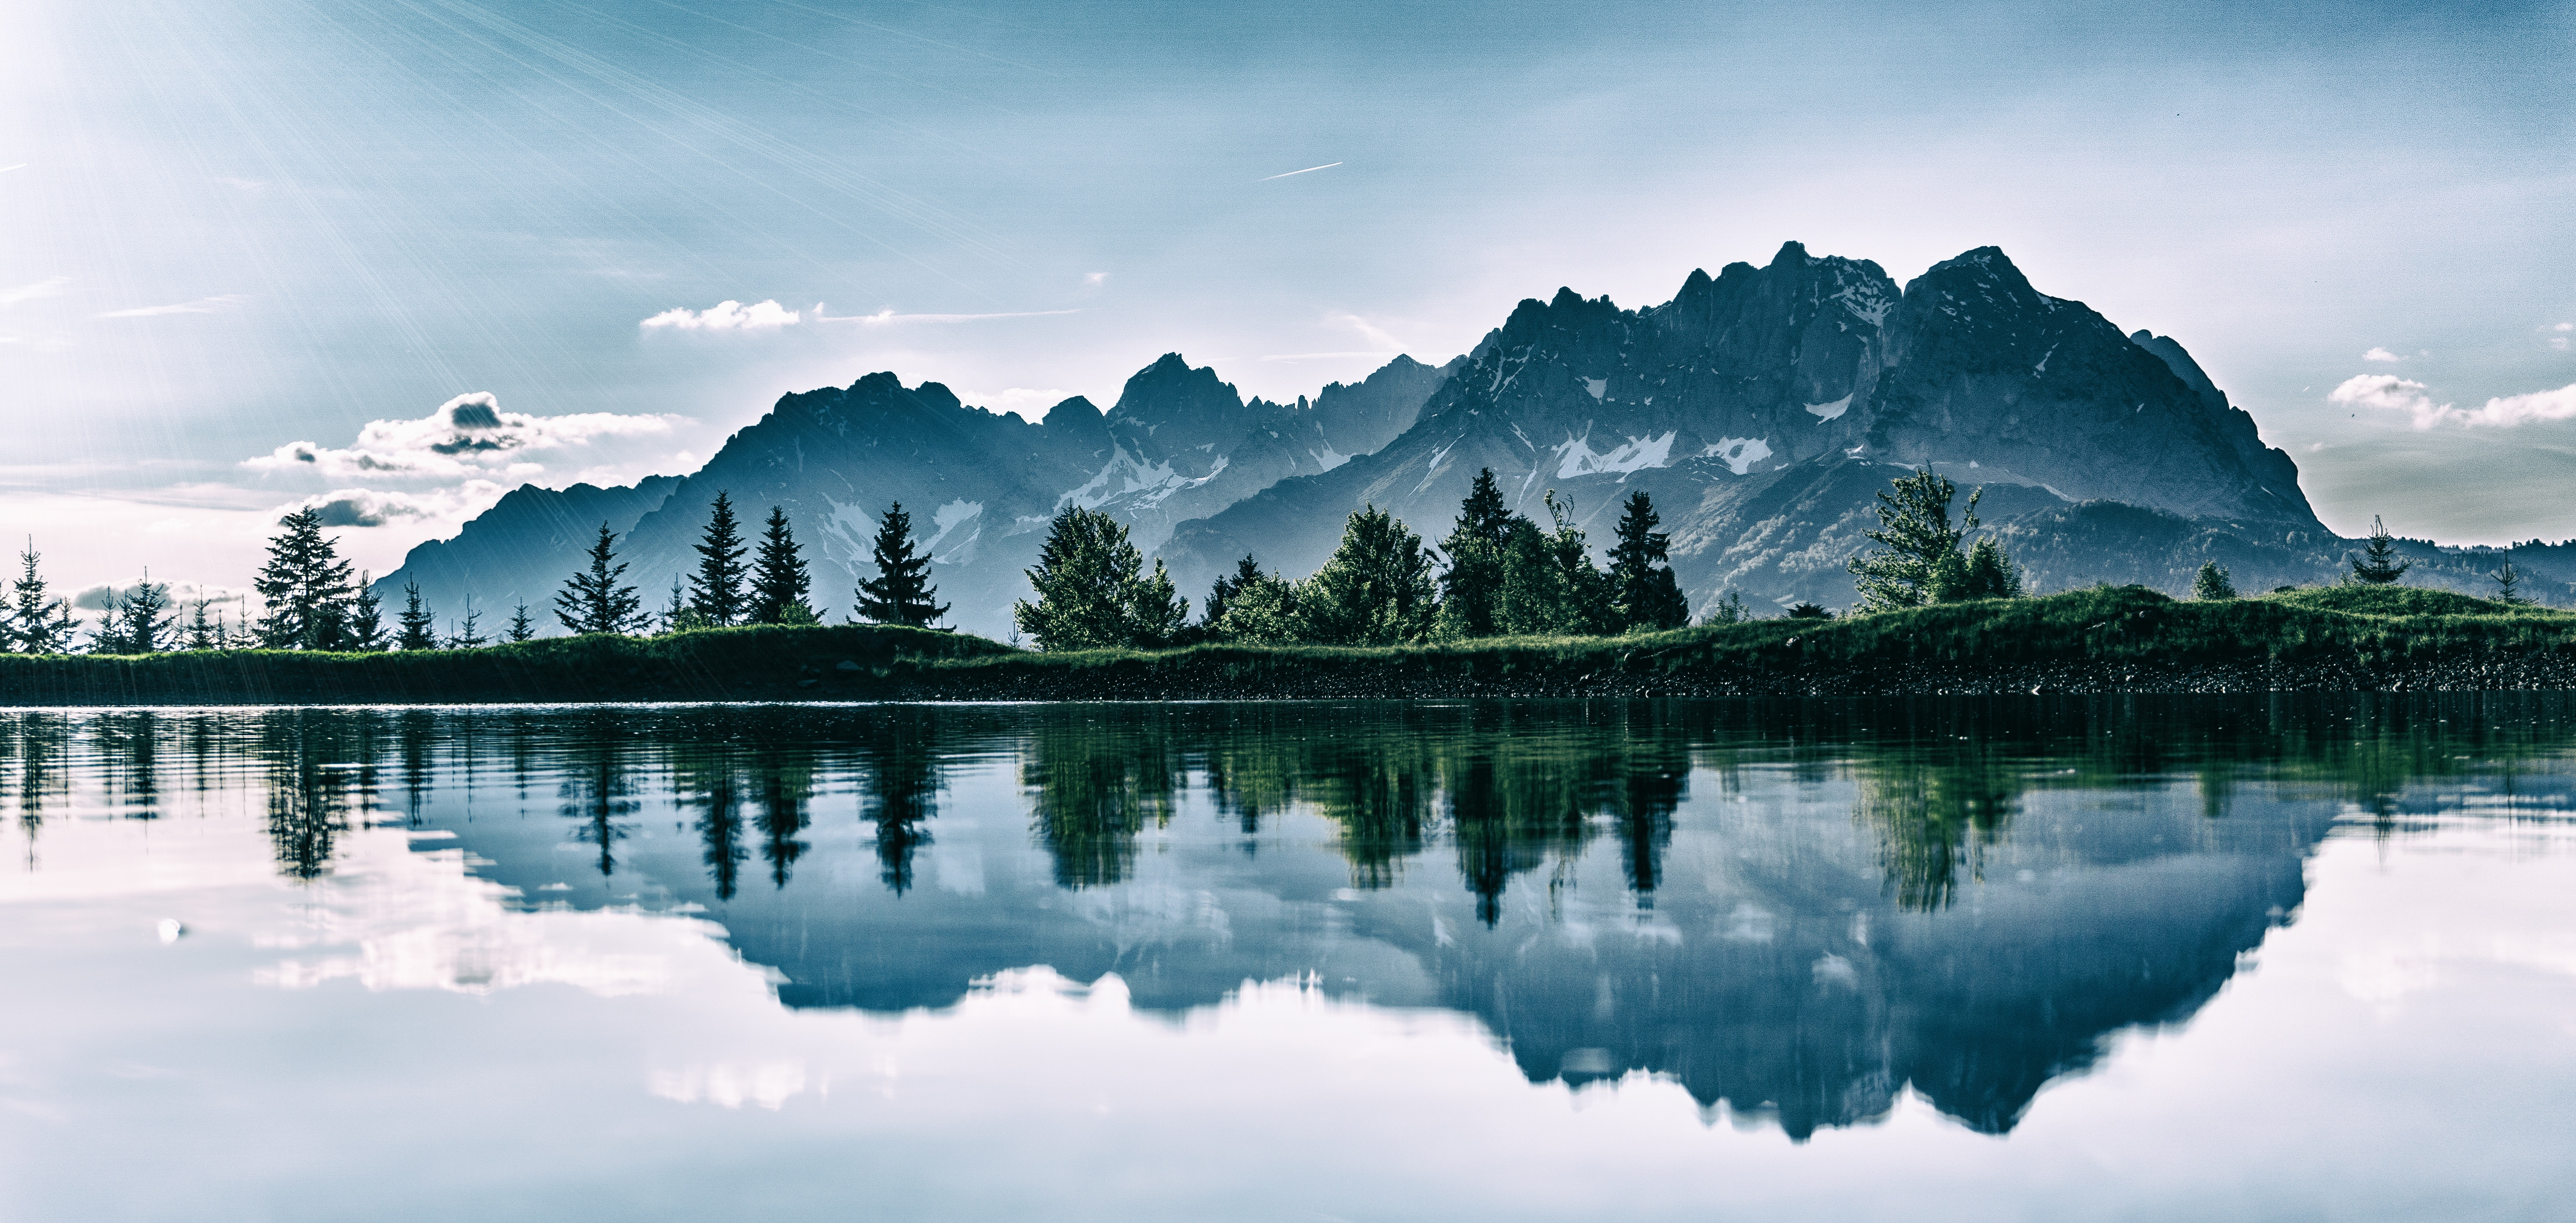 146422 download wallpaper Nature, Mountains, Lake, Reflection, Photoshop screensavers and pictures for free